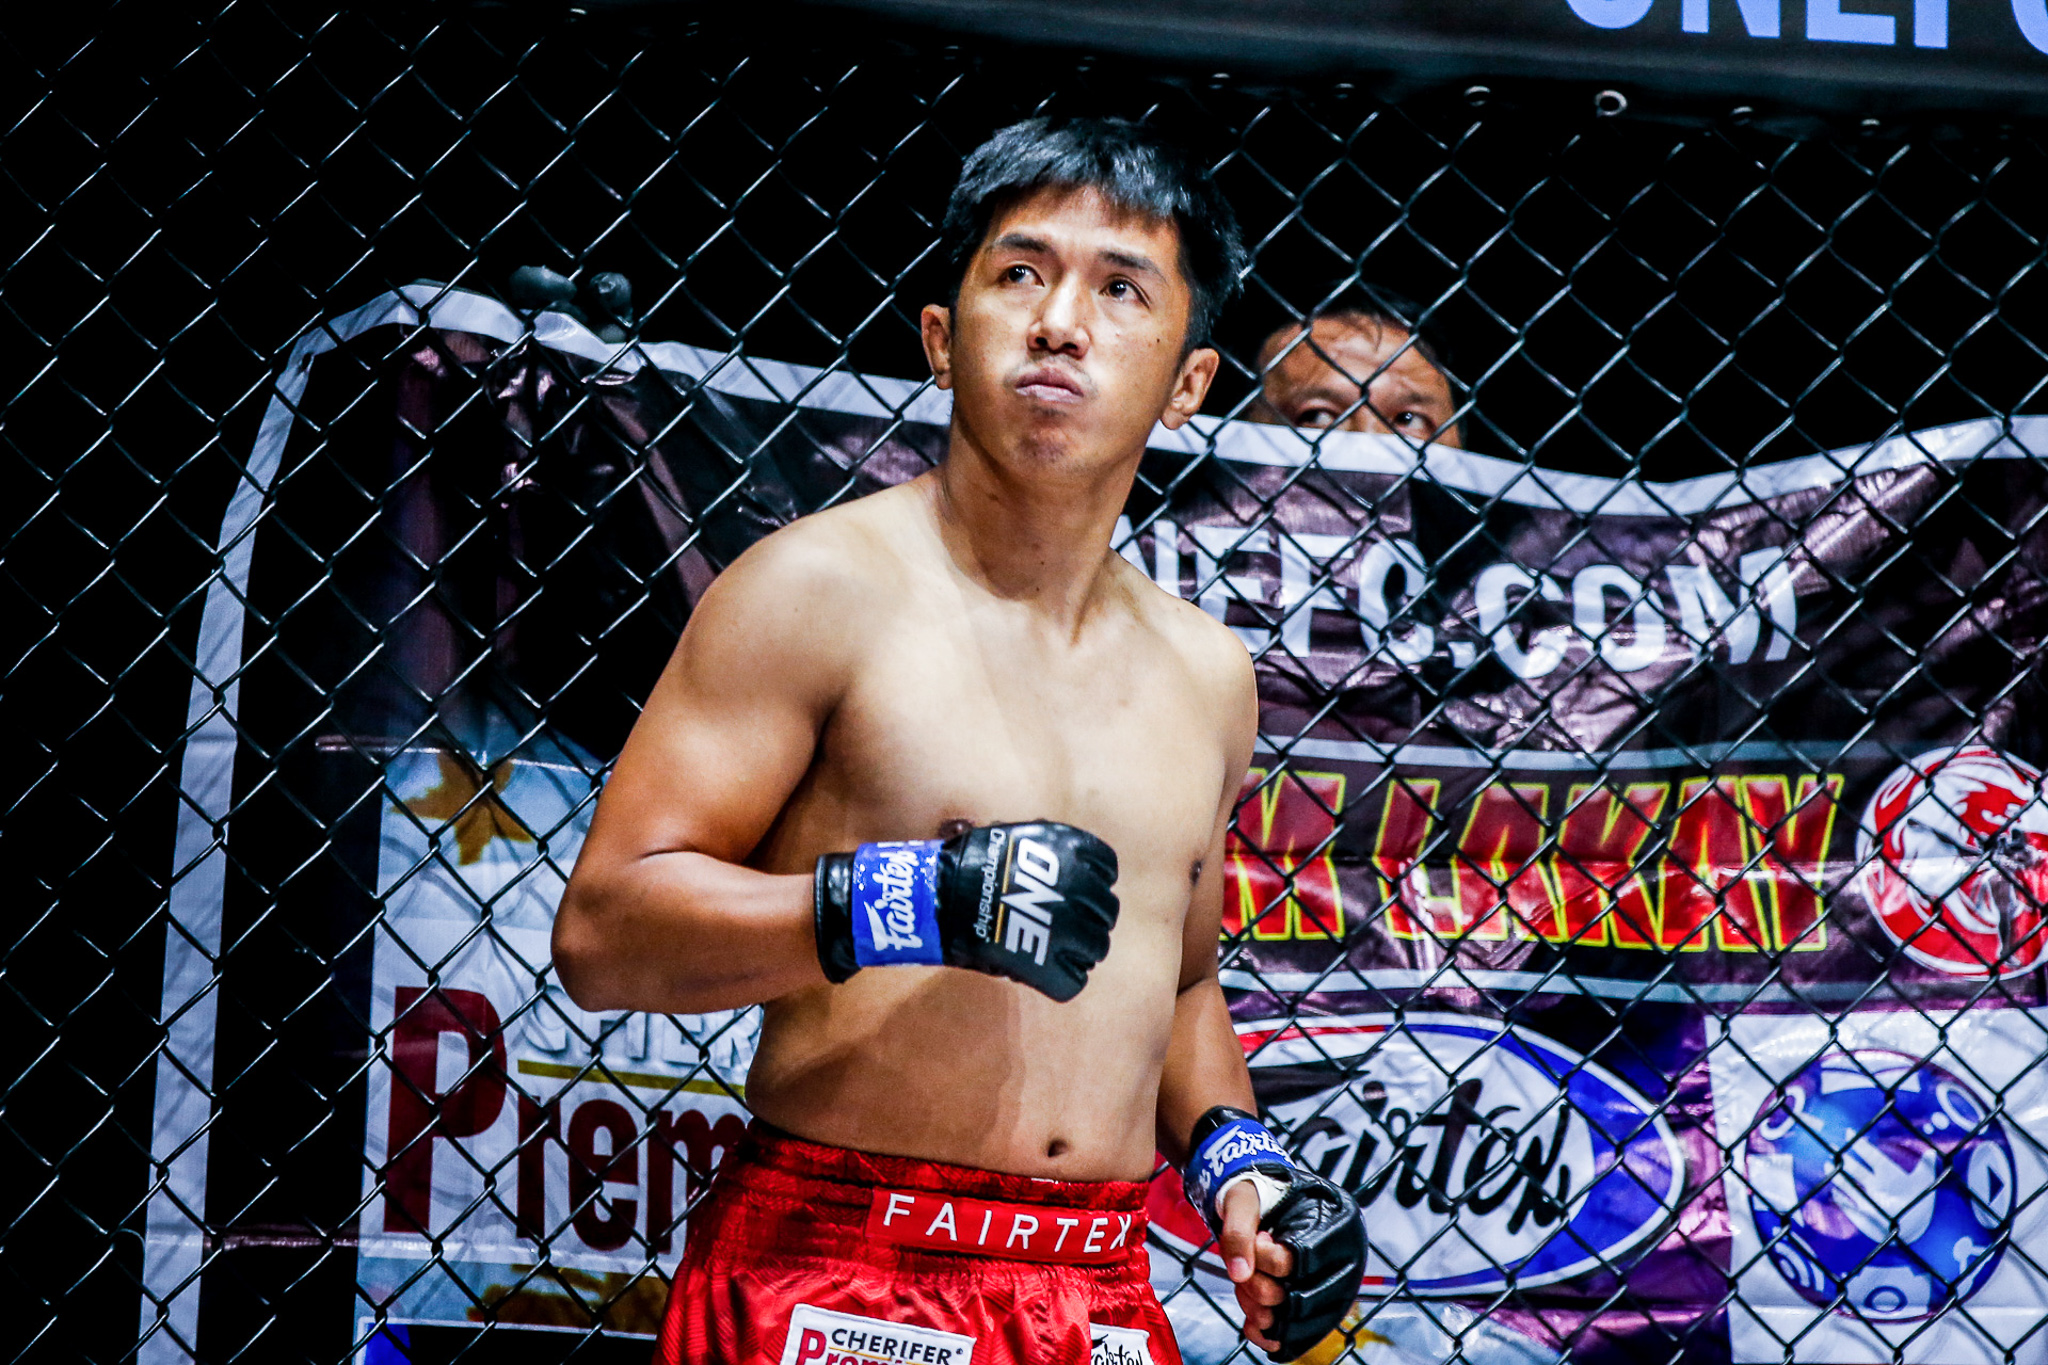 We will be back better than ever in 2021, says Eustaquio